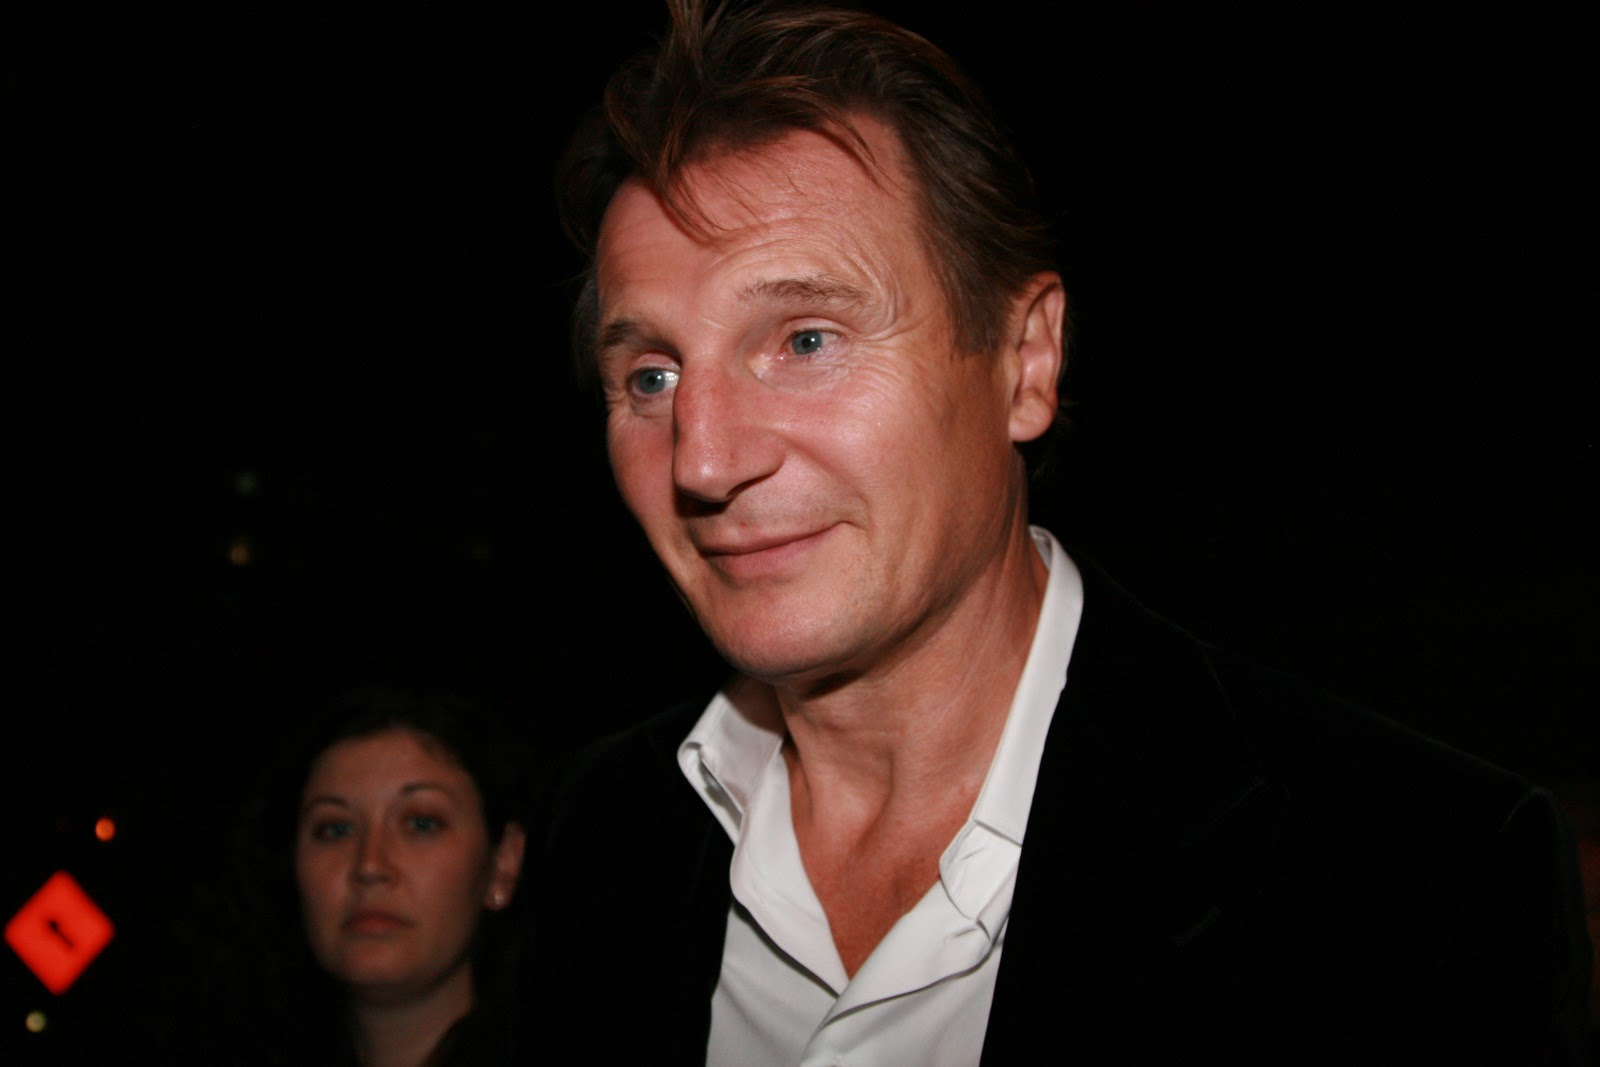 There's so much wrong with that Liam Neeson interview—we've only just scratched the surface